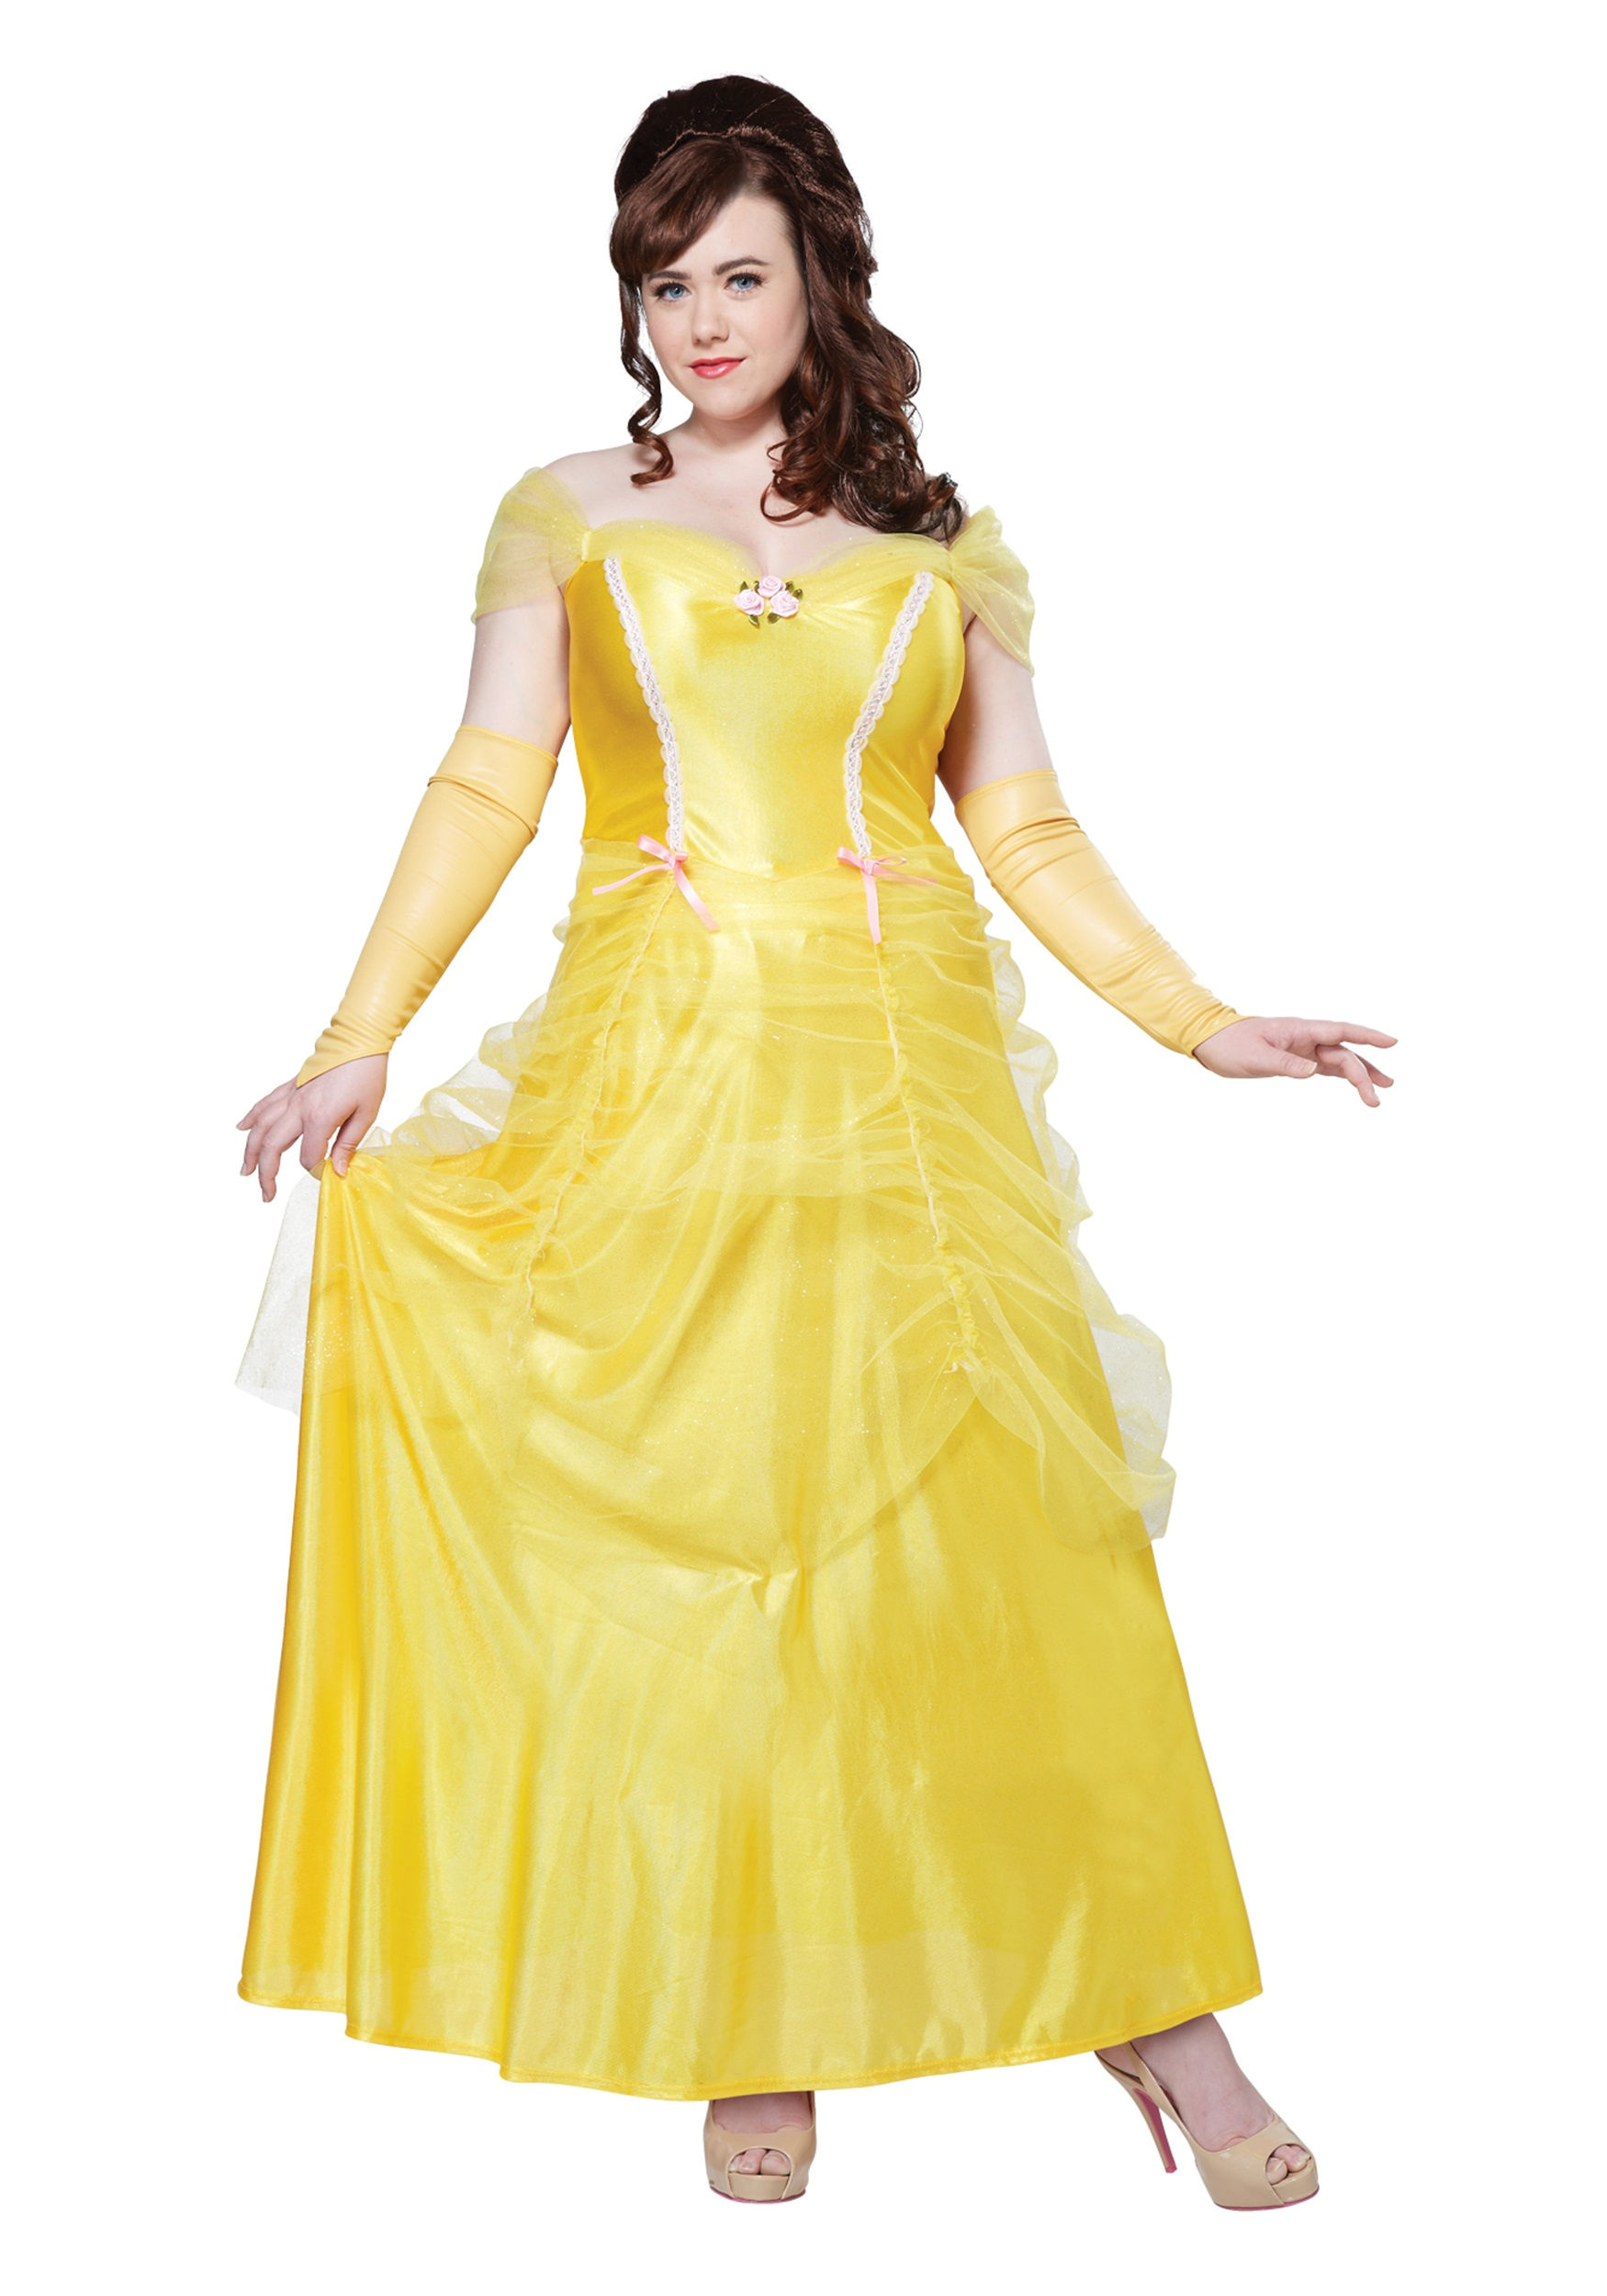 Plus Size Classic Beauty Costume - Dress Halloween Costumes